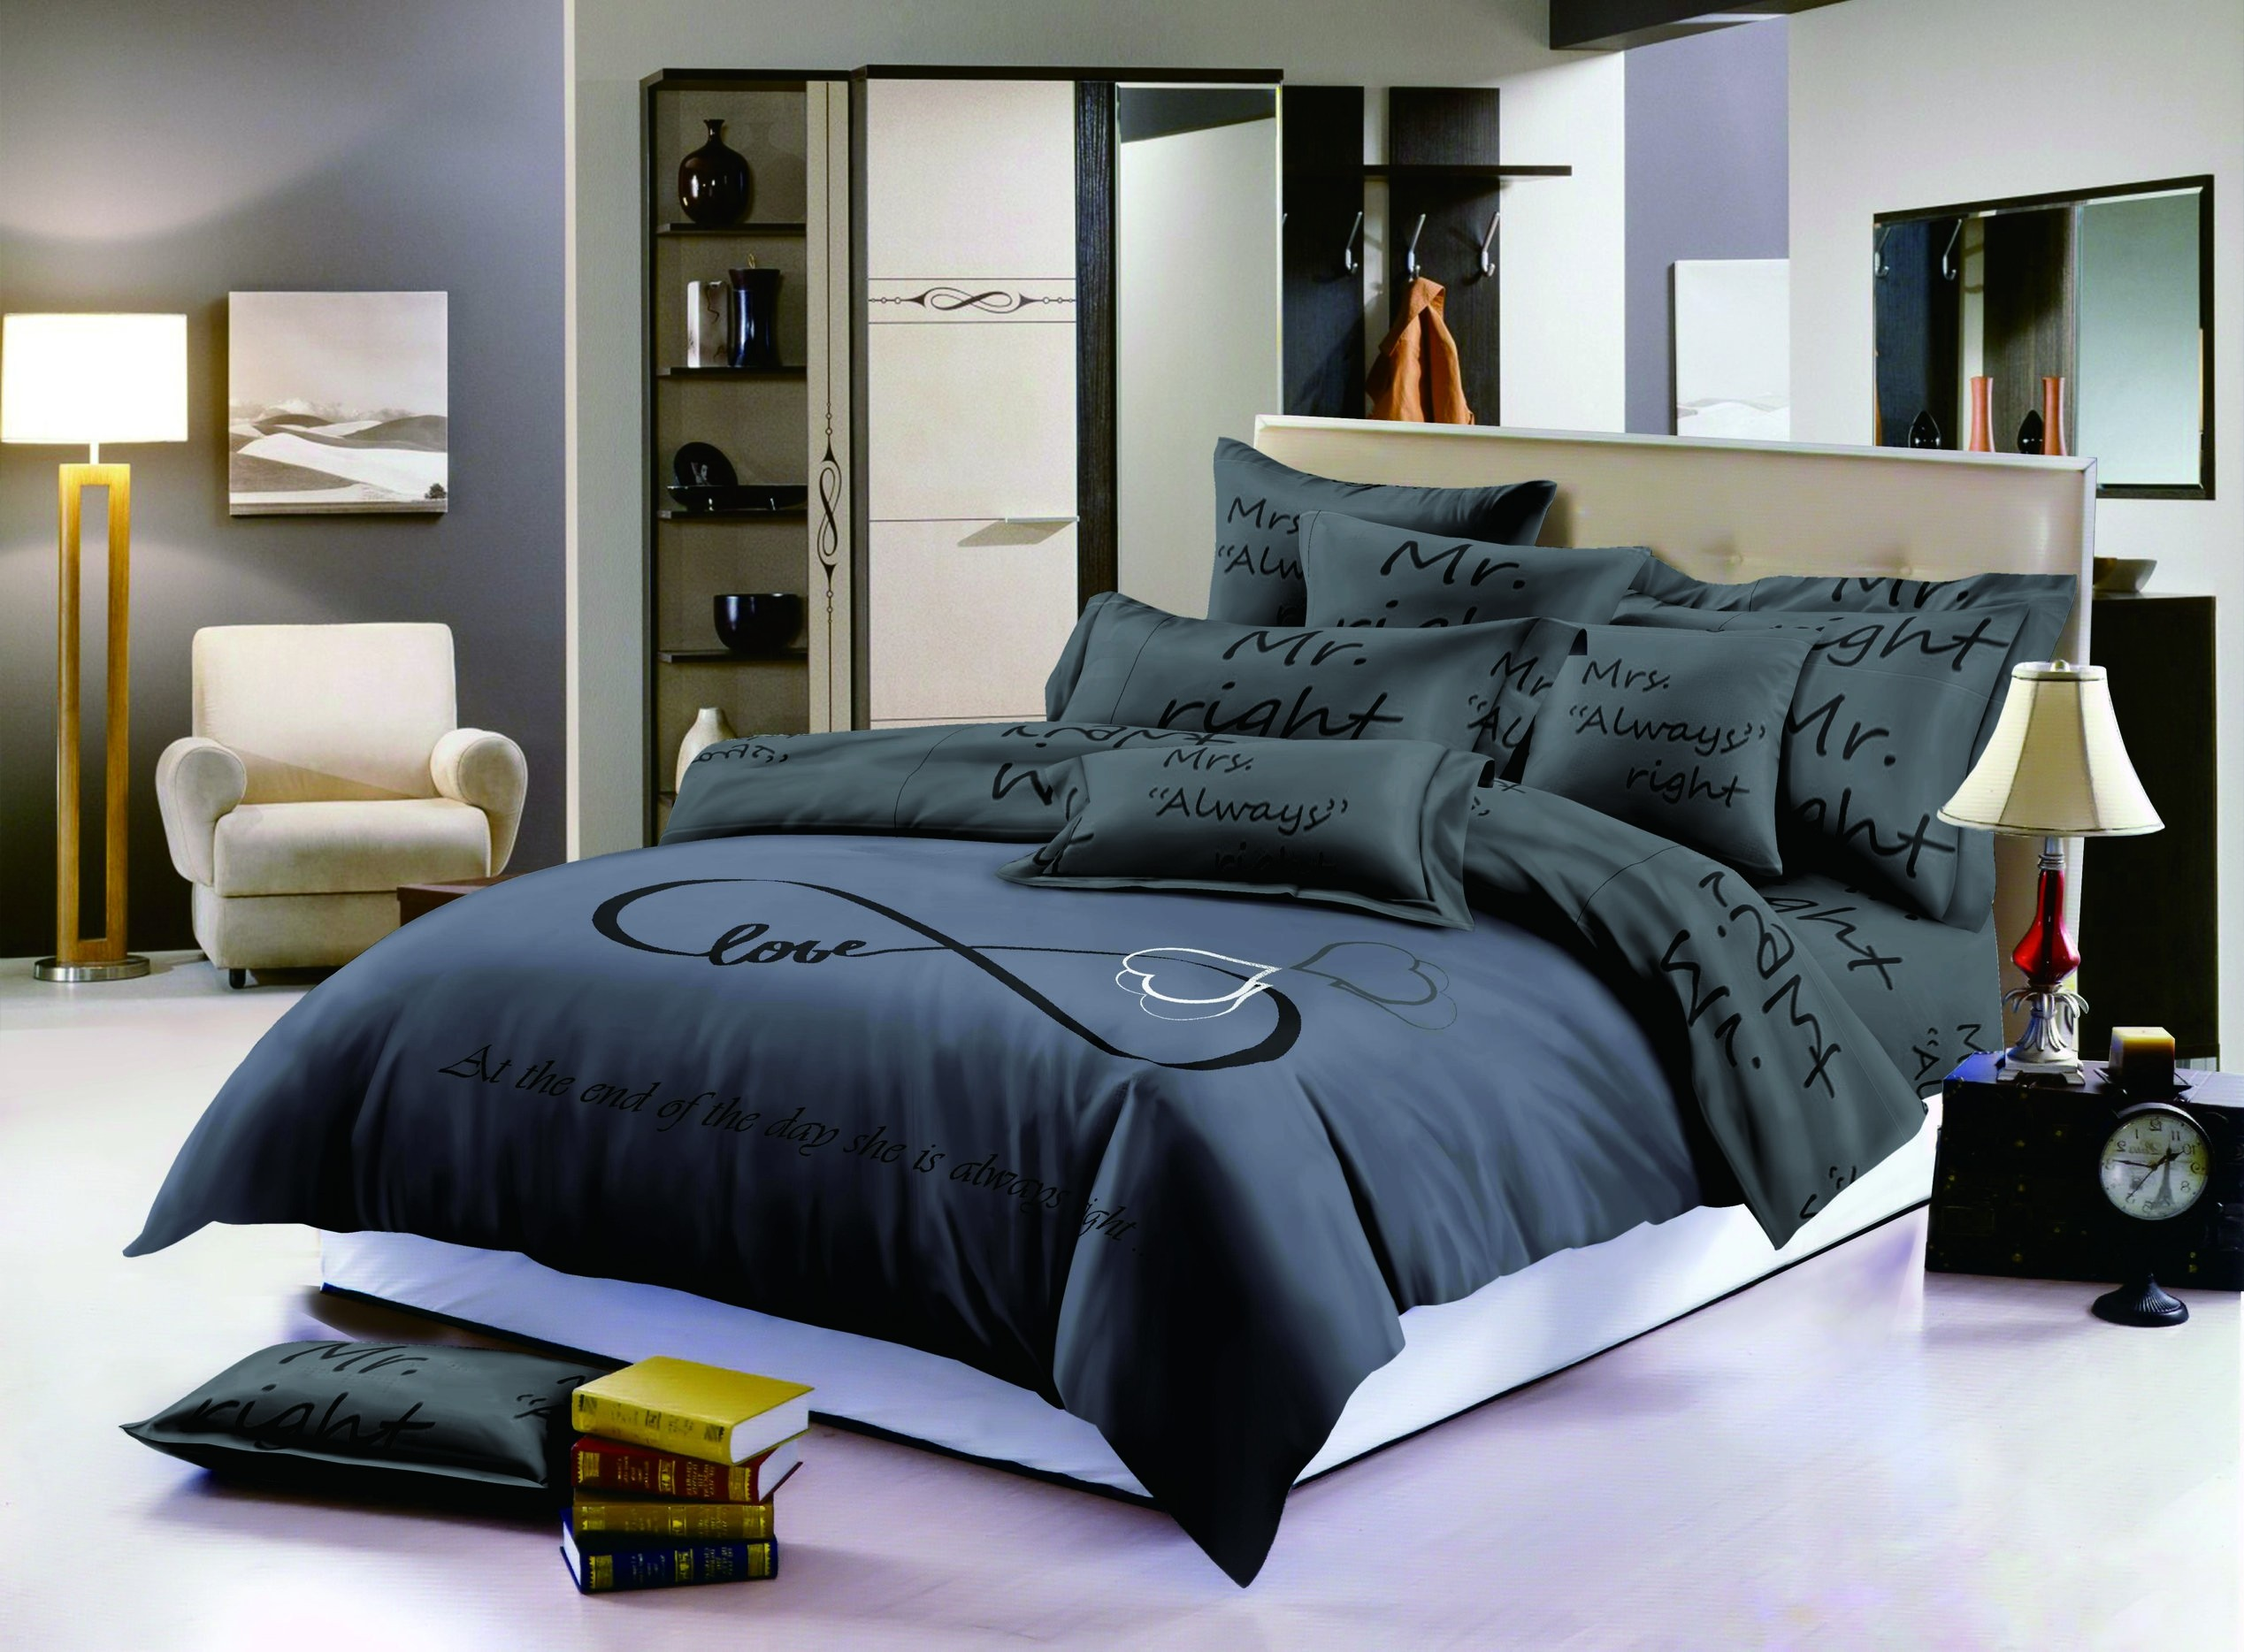 3c5917fba4 iSleep Premium Quality Silky Soft Bed Set - 004 (Queen) | Furniture ...